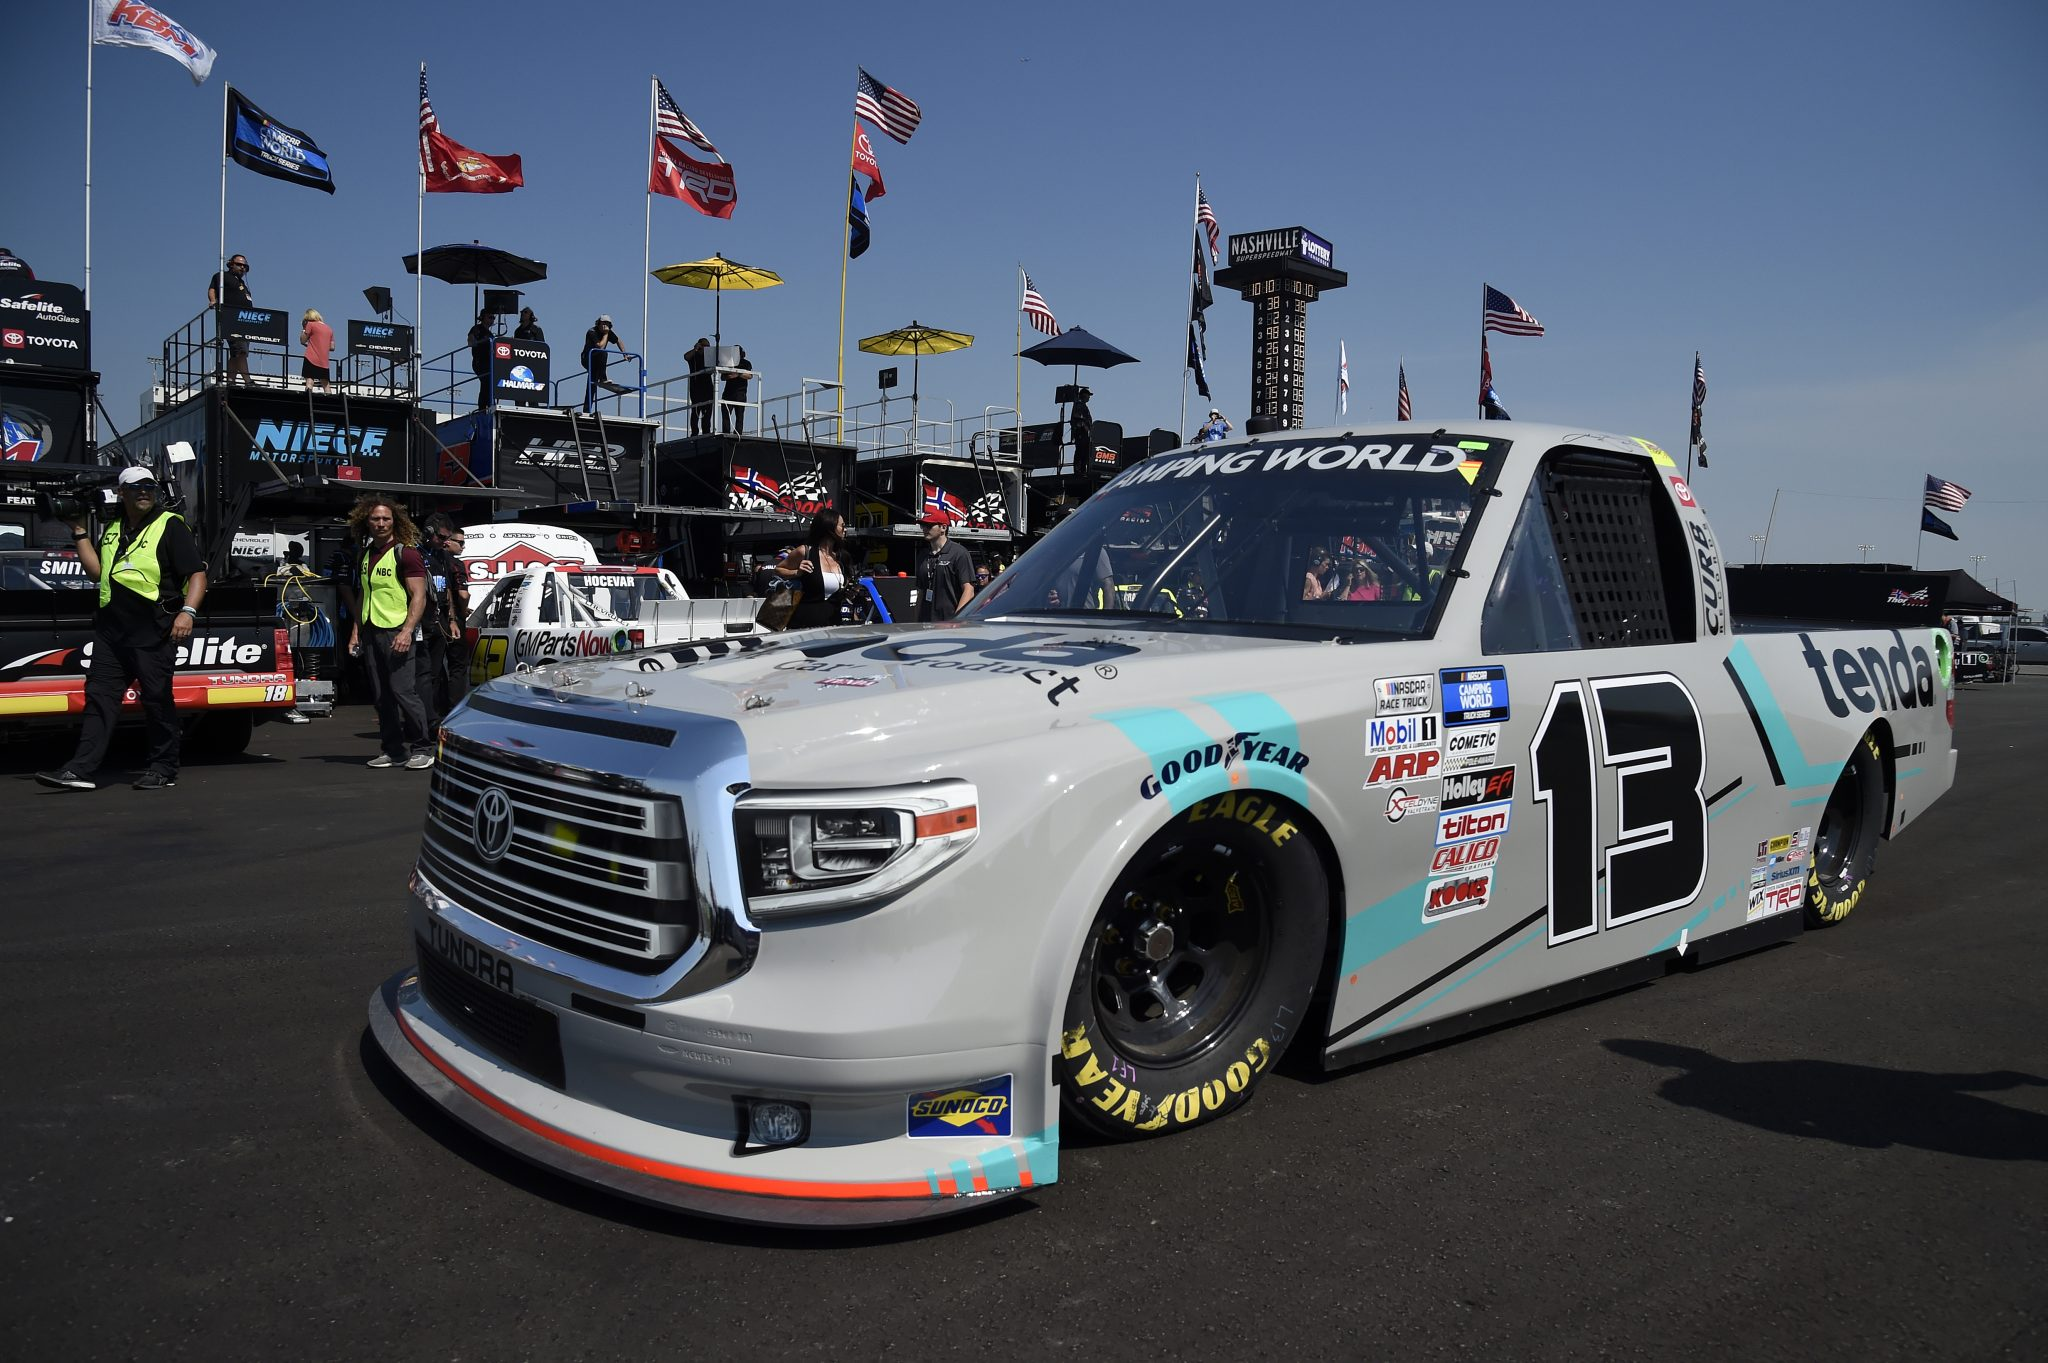 LEBANON, TENNESSEE - JUNE 18: Johnny Sauter, driver of the #13 Tenda Equine & Pet Care Products Toyota, drives in the garage area during practice for the NASCAR Camping World Truck Series Rackley Roofing 200 at Nashville Superspeedway on June 18, 2021 in Lebanon, Tennessee. (Photo by Logan Riely/Getty Images) | Getty Images